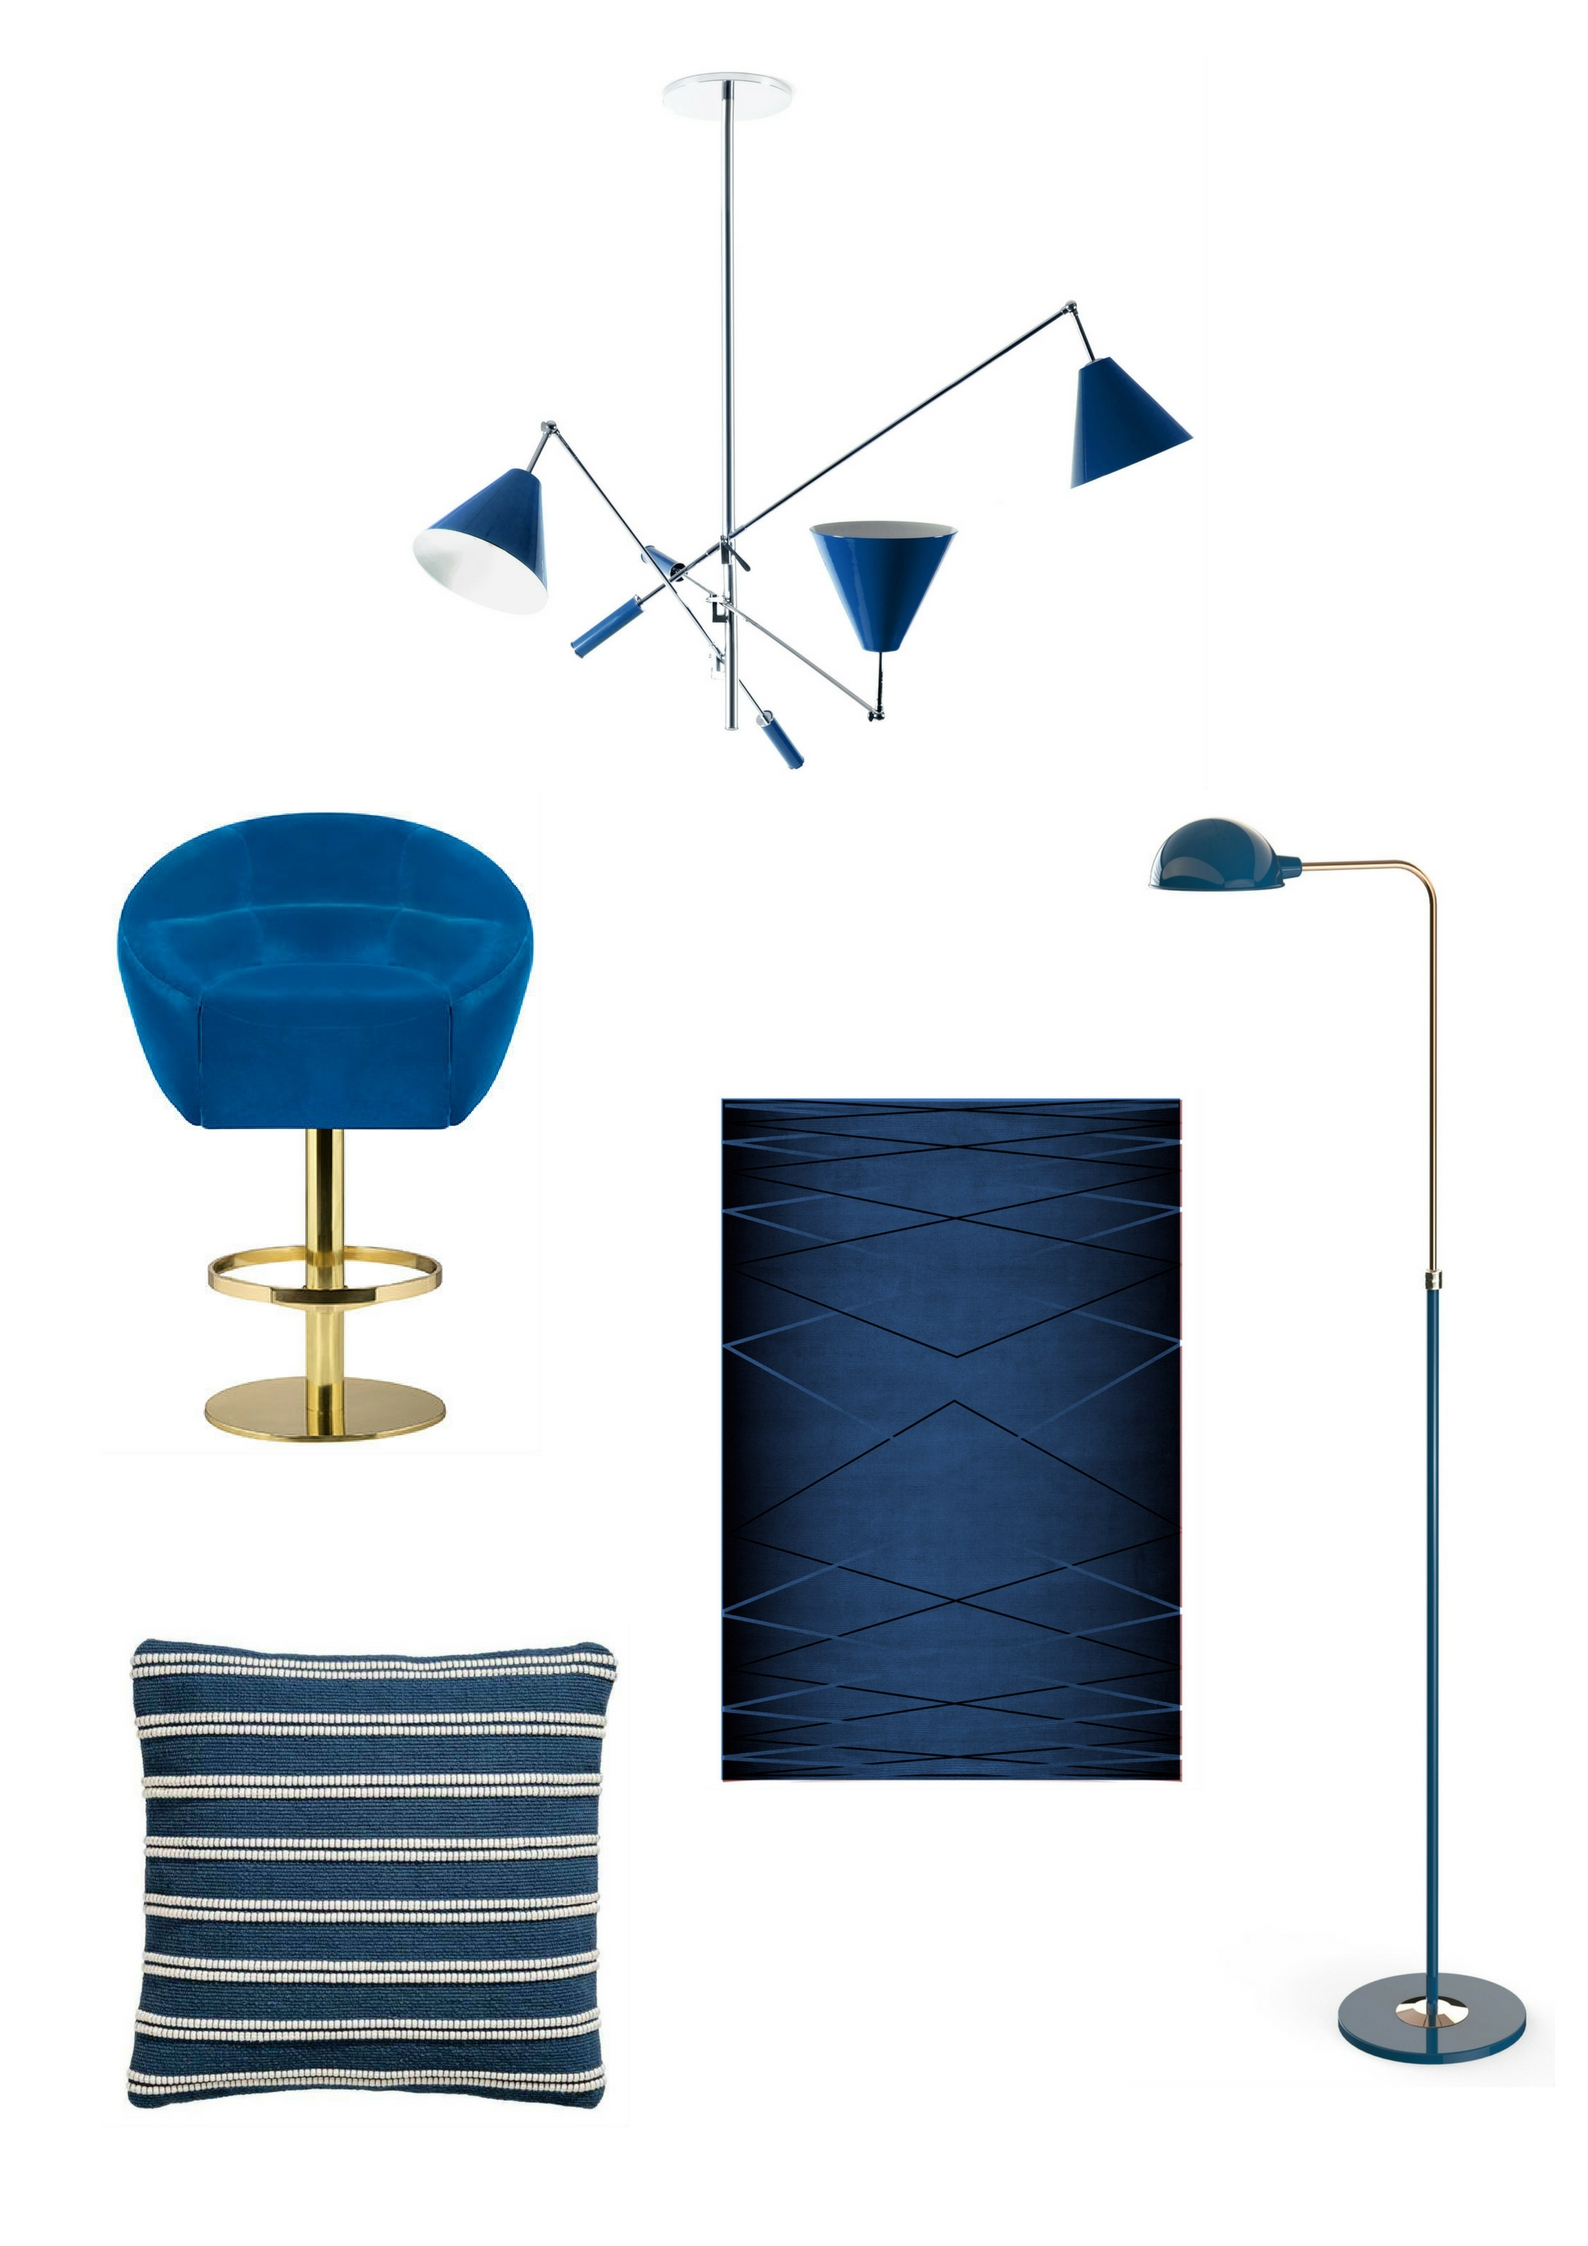 Mood Board Why Lapis Blue Can Be The Perfect Summer Color 12 lapis blue Mood Board: Why Lapis Blue Can Be The Perfect Summer Color Mood Board Why Lapis Blue Can Be The Perfect Summer Color 12